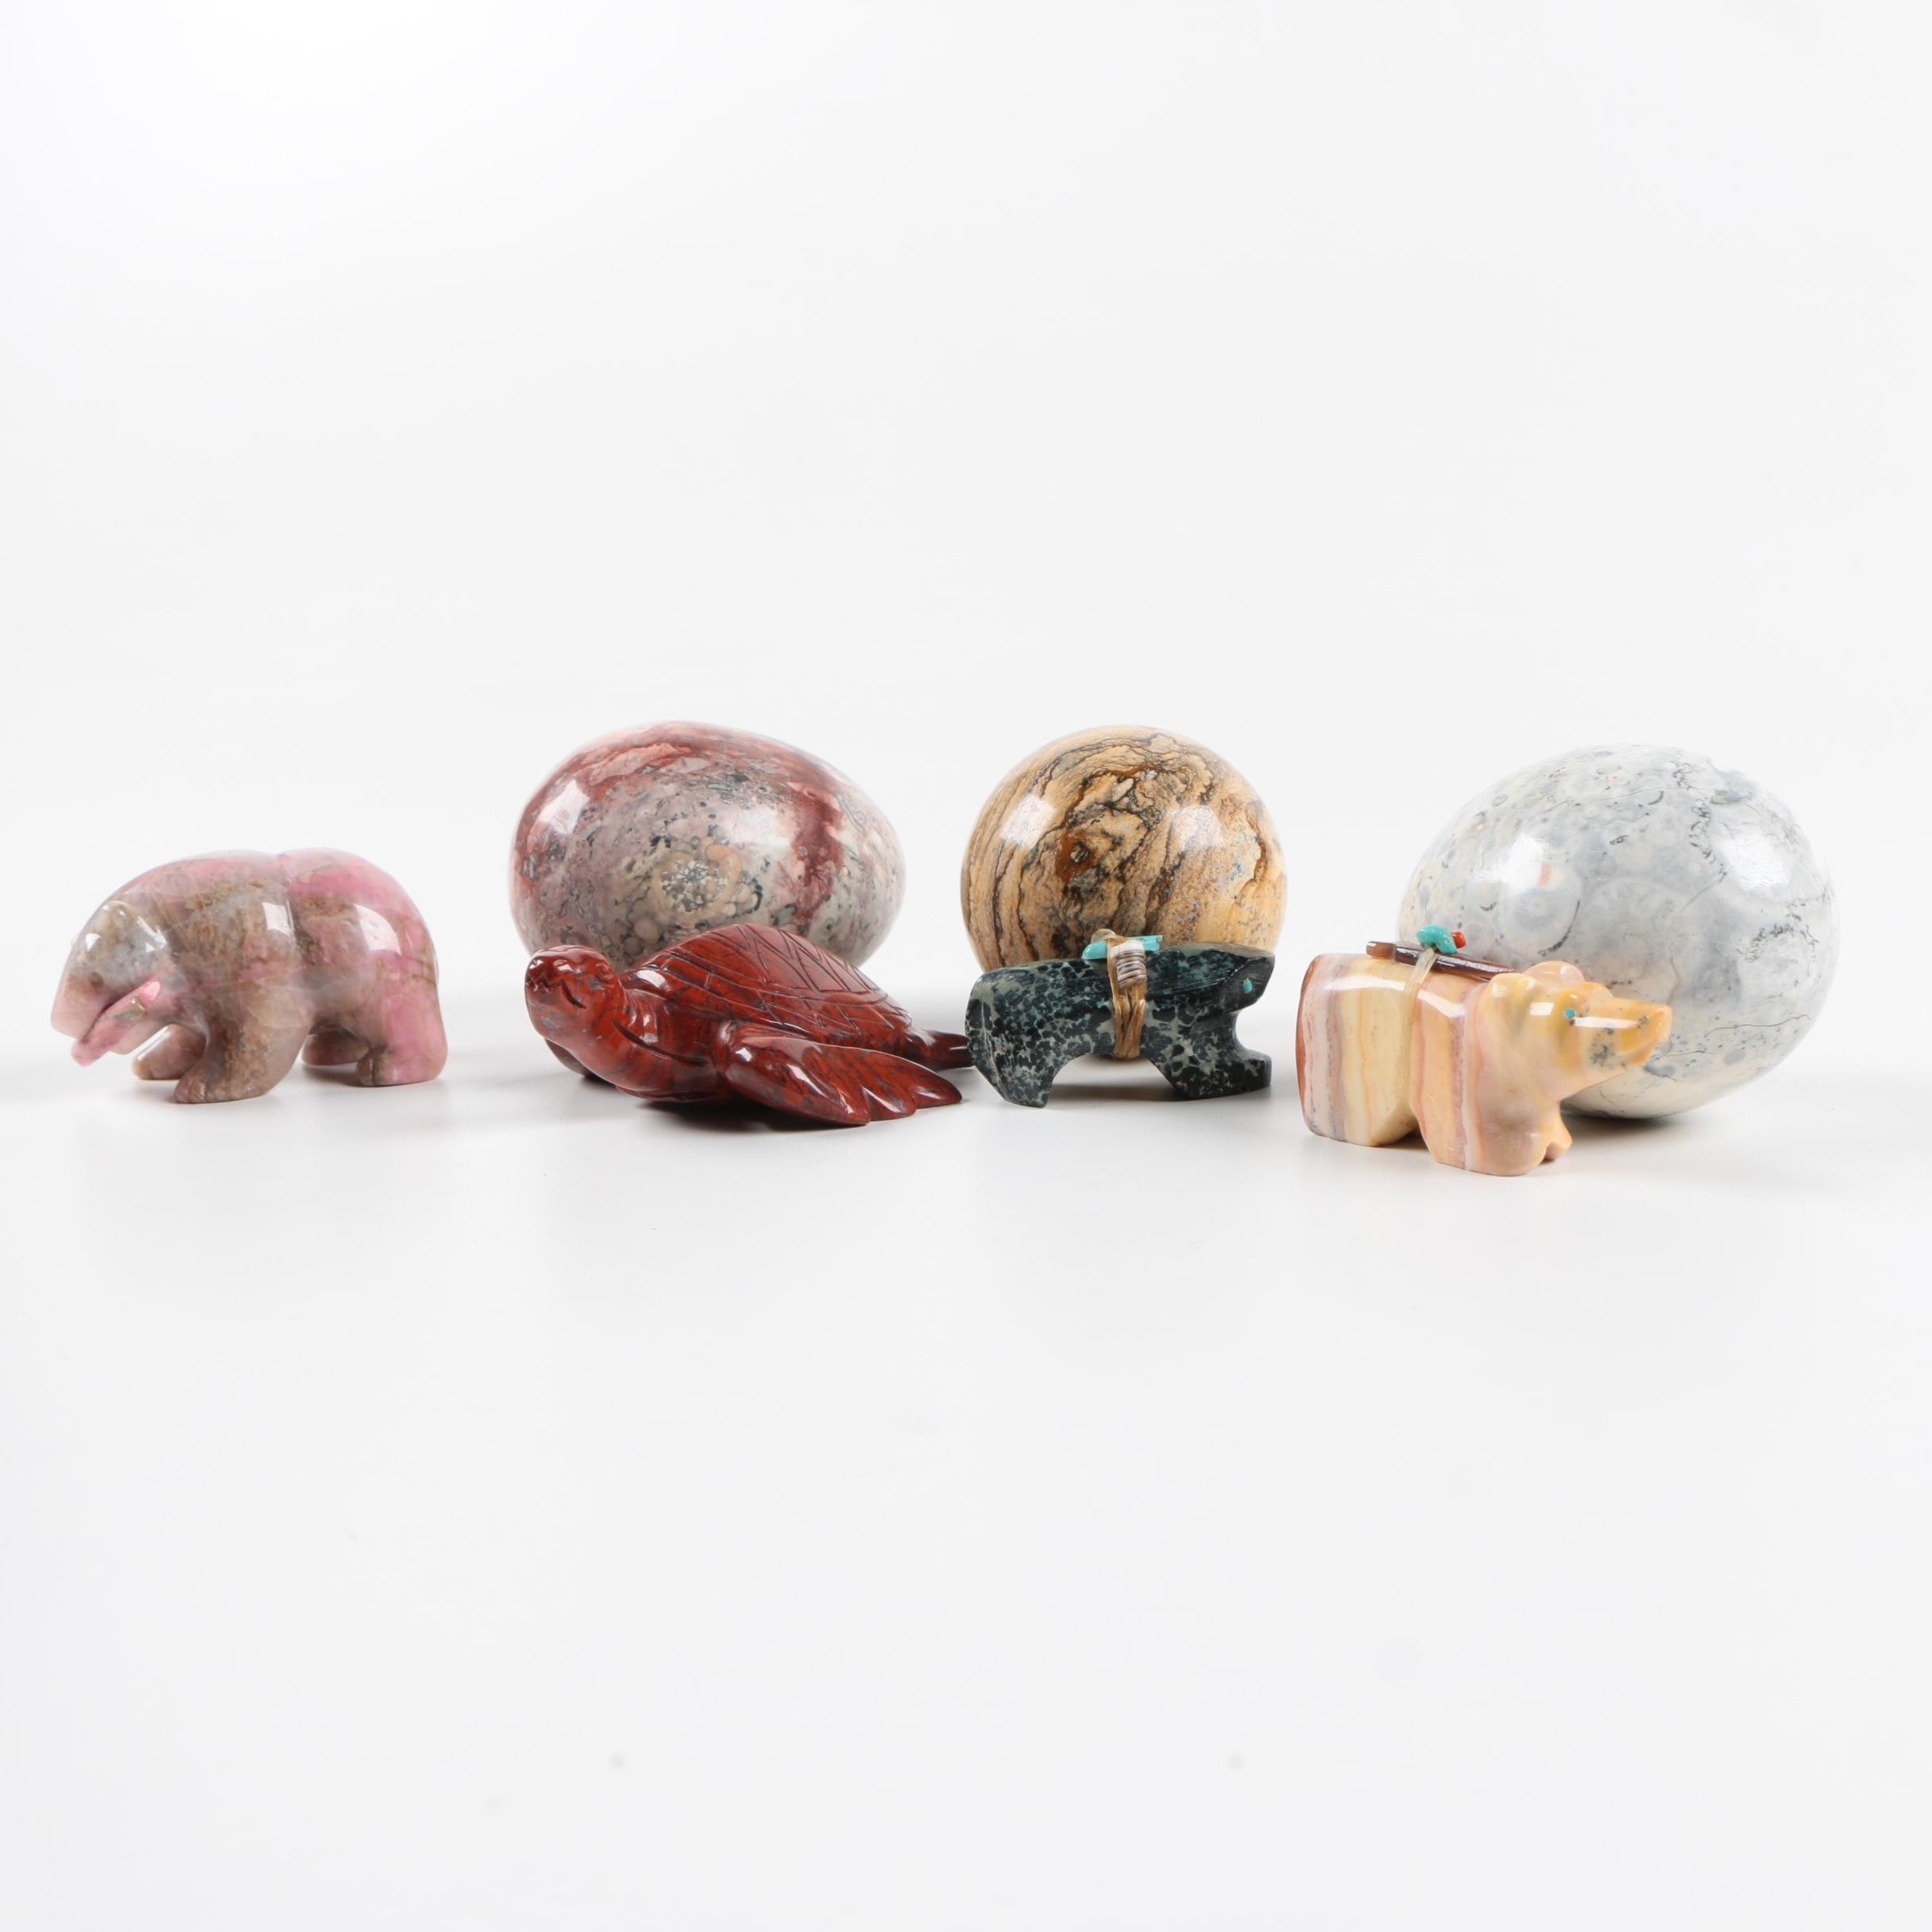 Carved Stone Orbs and Animal Figurines